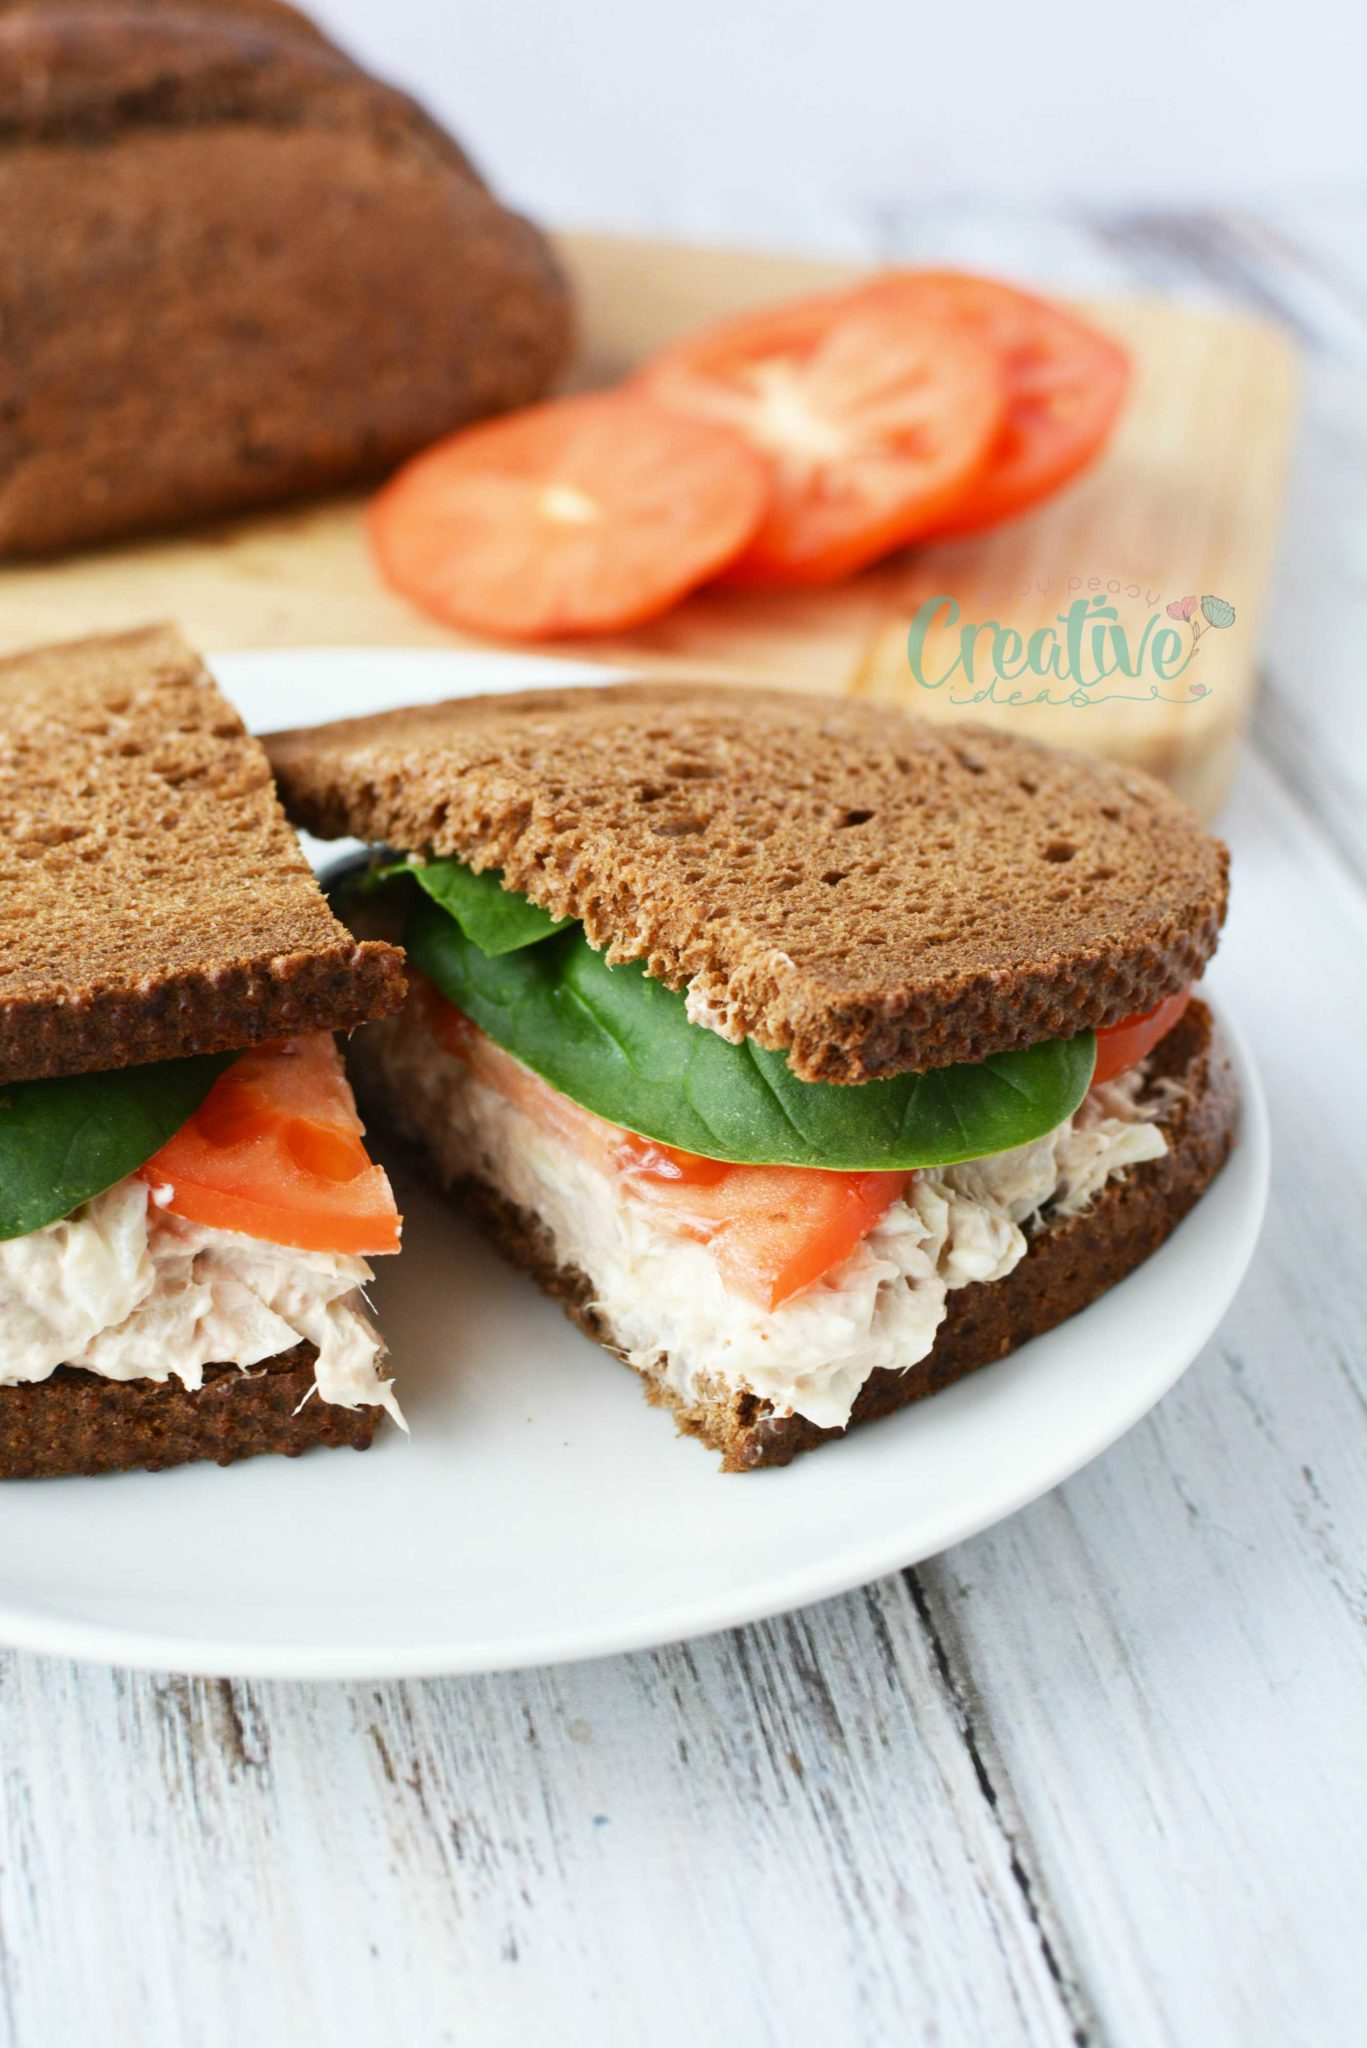 the best tuna spread recipe with simple but delicious ingredients like cream cheese, onion, mayonnaise and hot sauce!